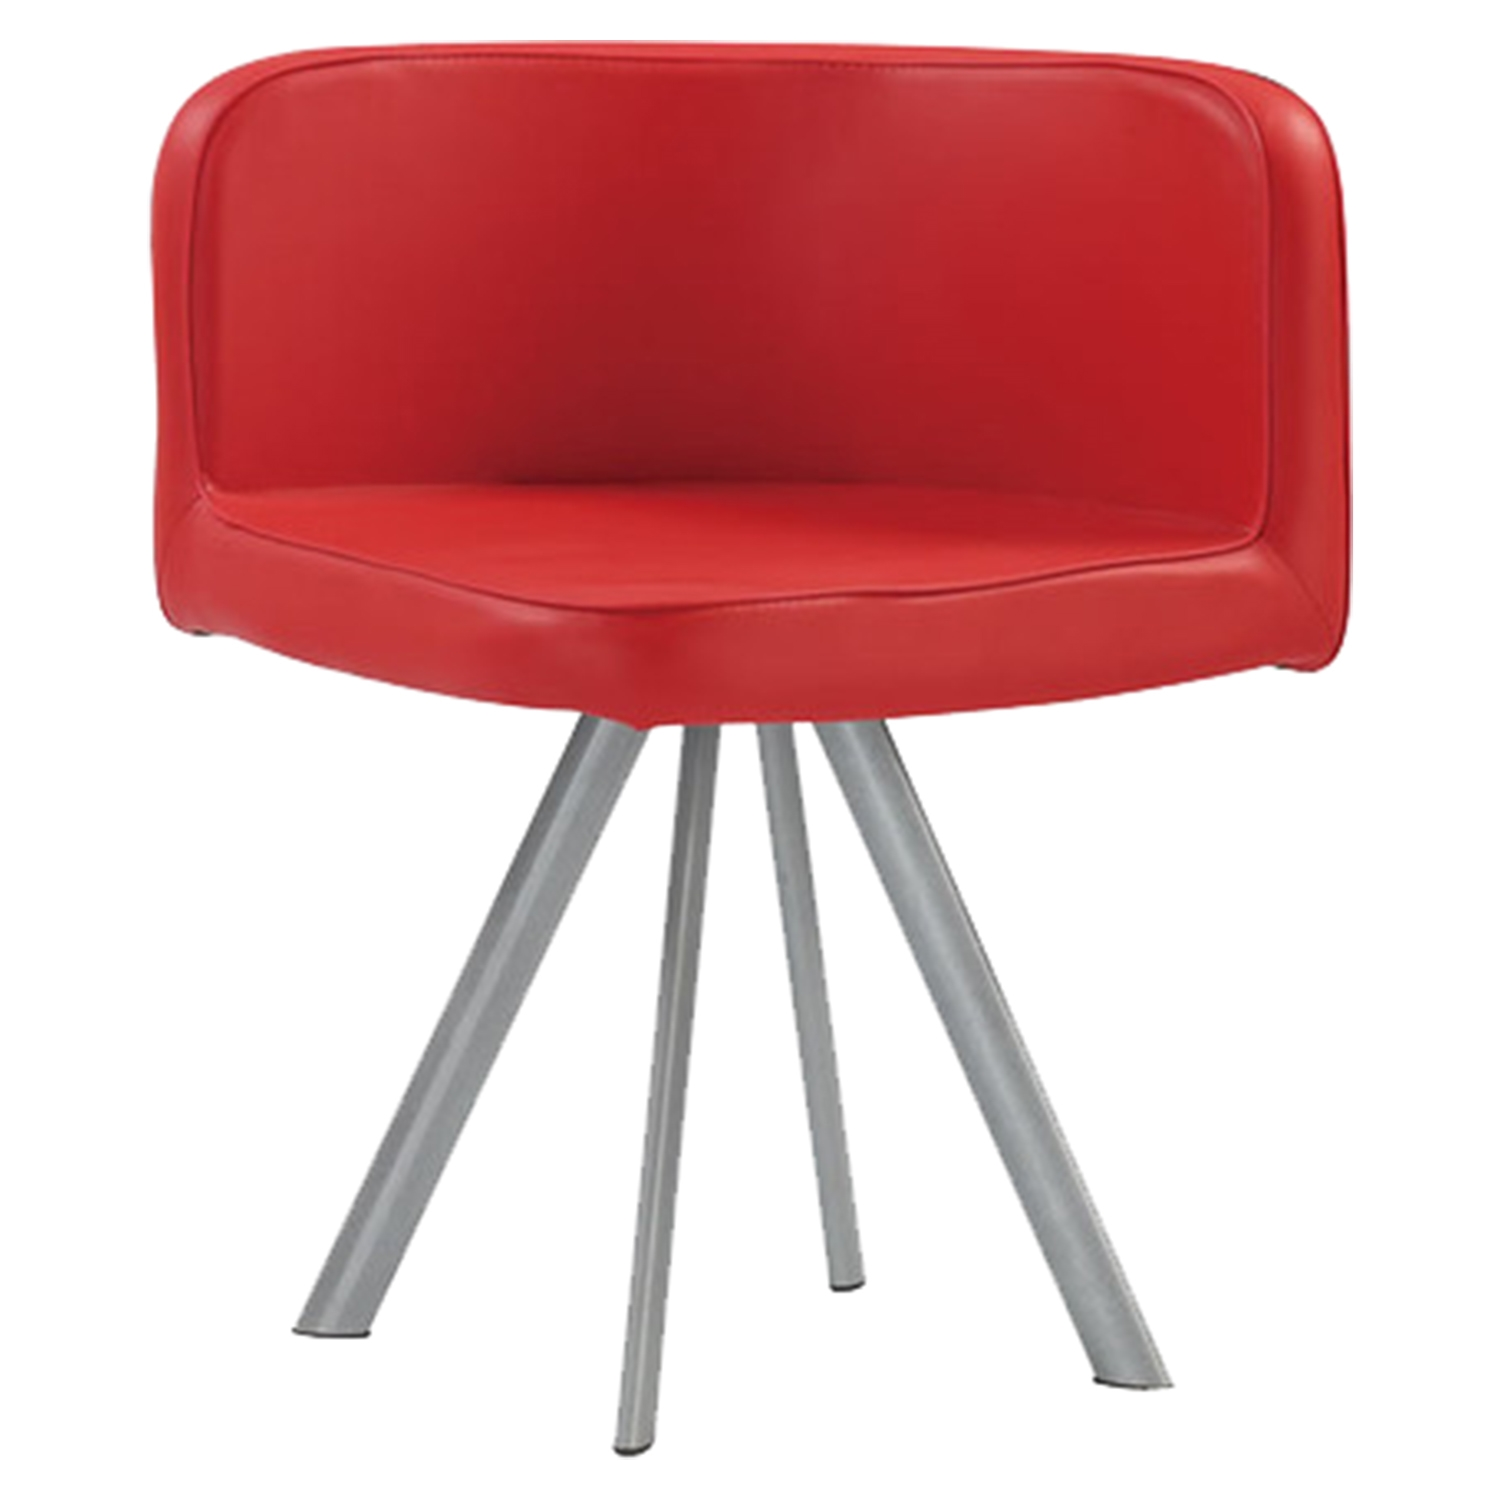 Emma Dining Chair - Red (Set of 2)